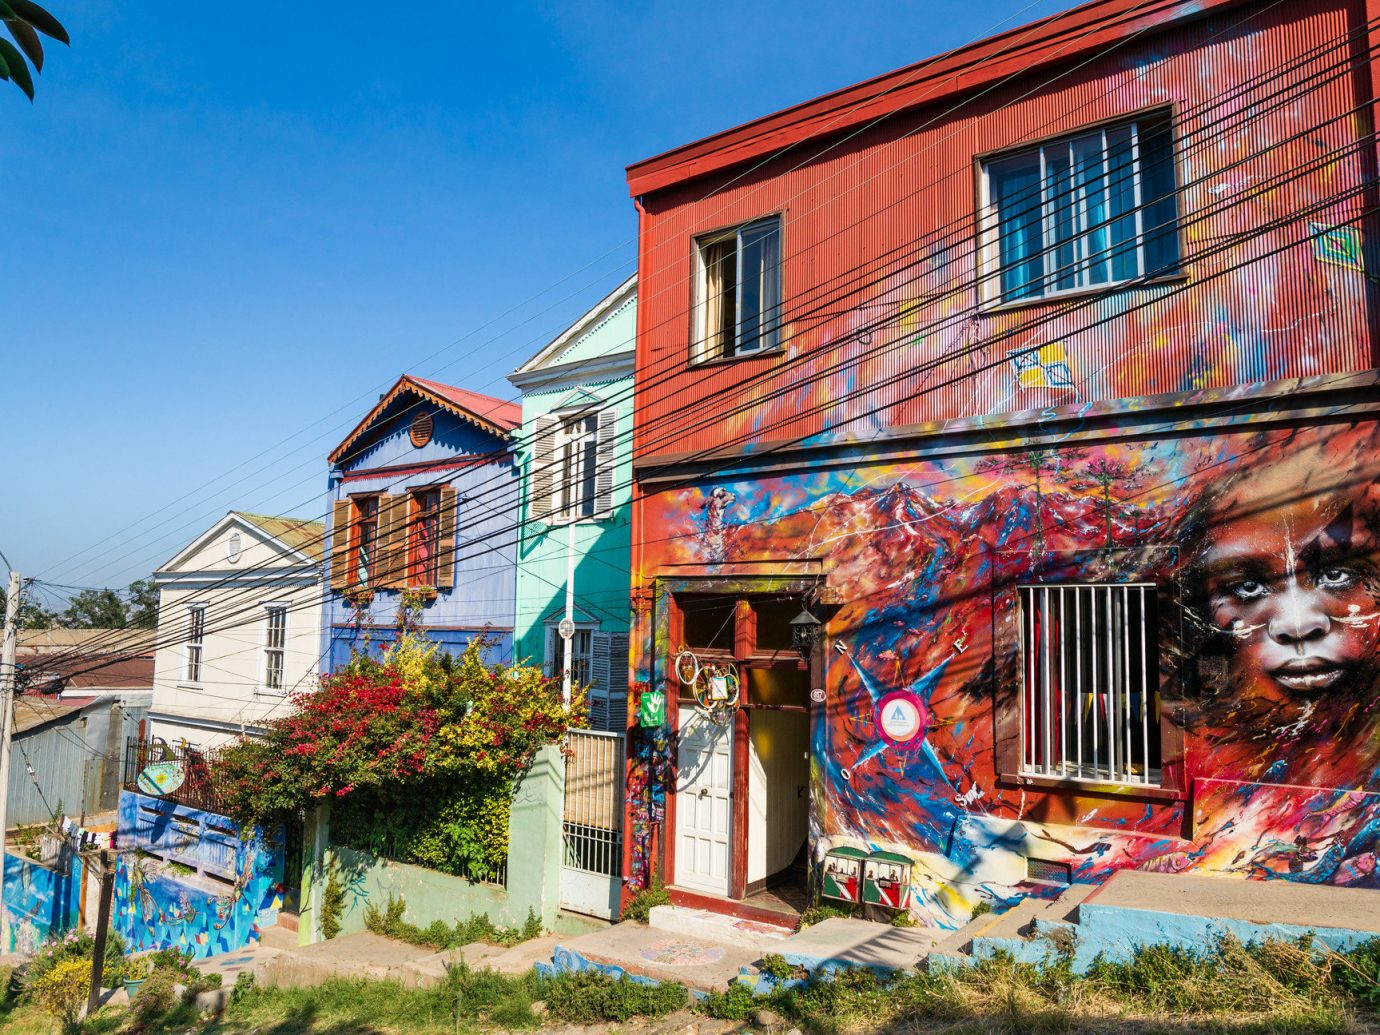 Trip Ideas building outdoor color Town neighbourhood urban area house art mural Village colorful